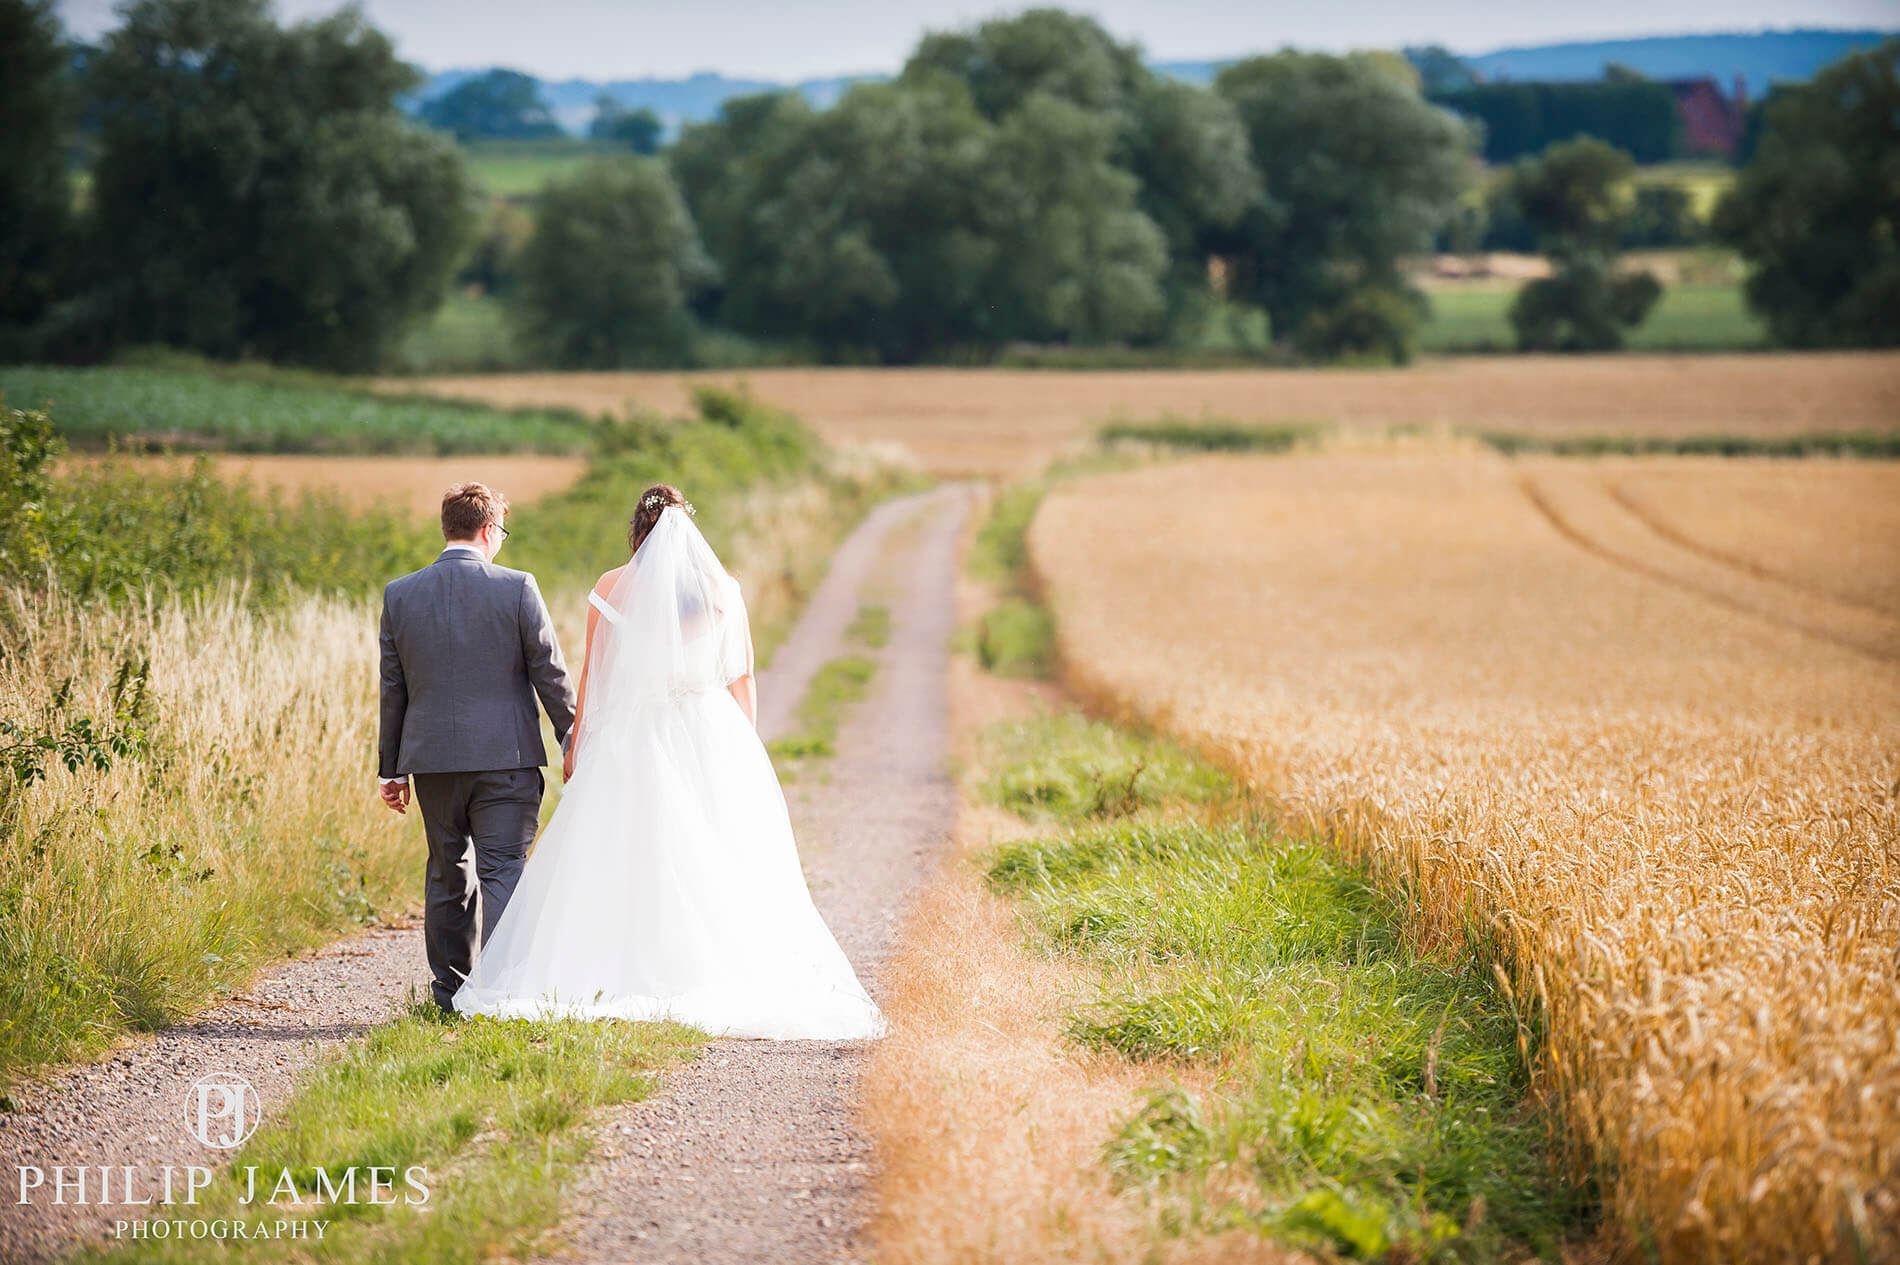 Birmingham Wedding Photographer - Philip James Photography based in Solihull (57 of 68)